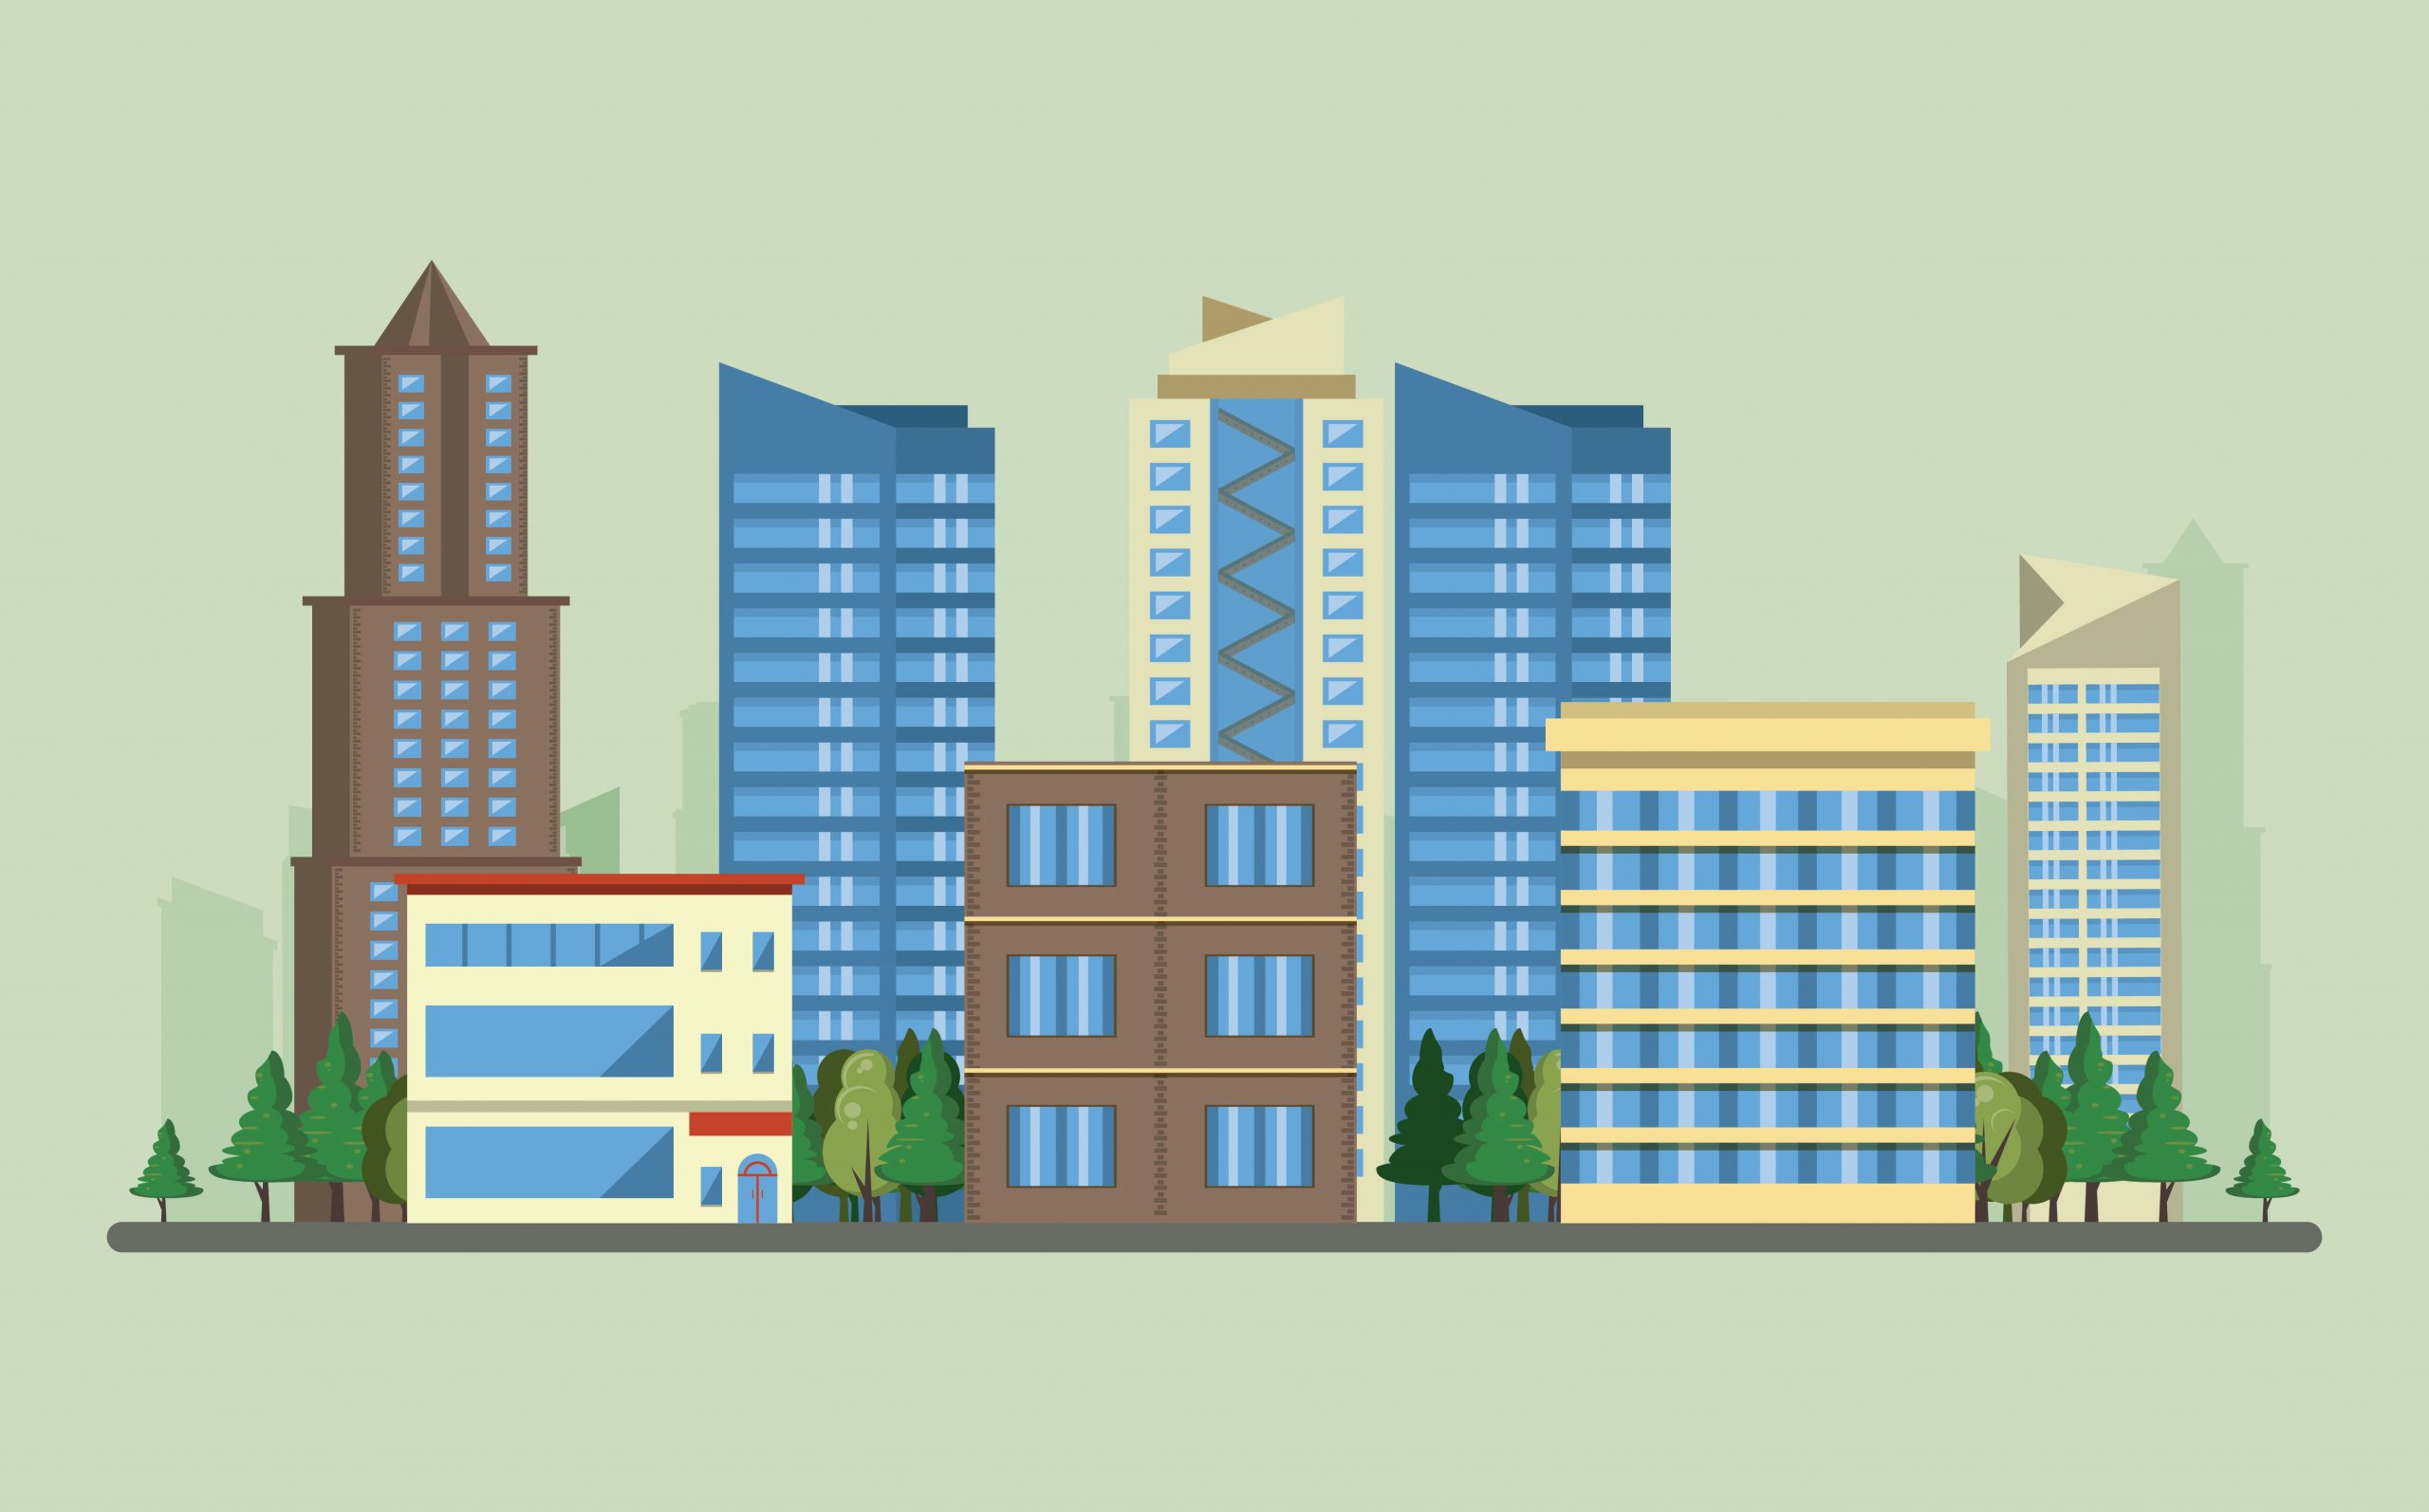 vector image of buildings - Gratuity to employees